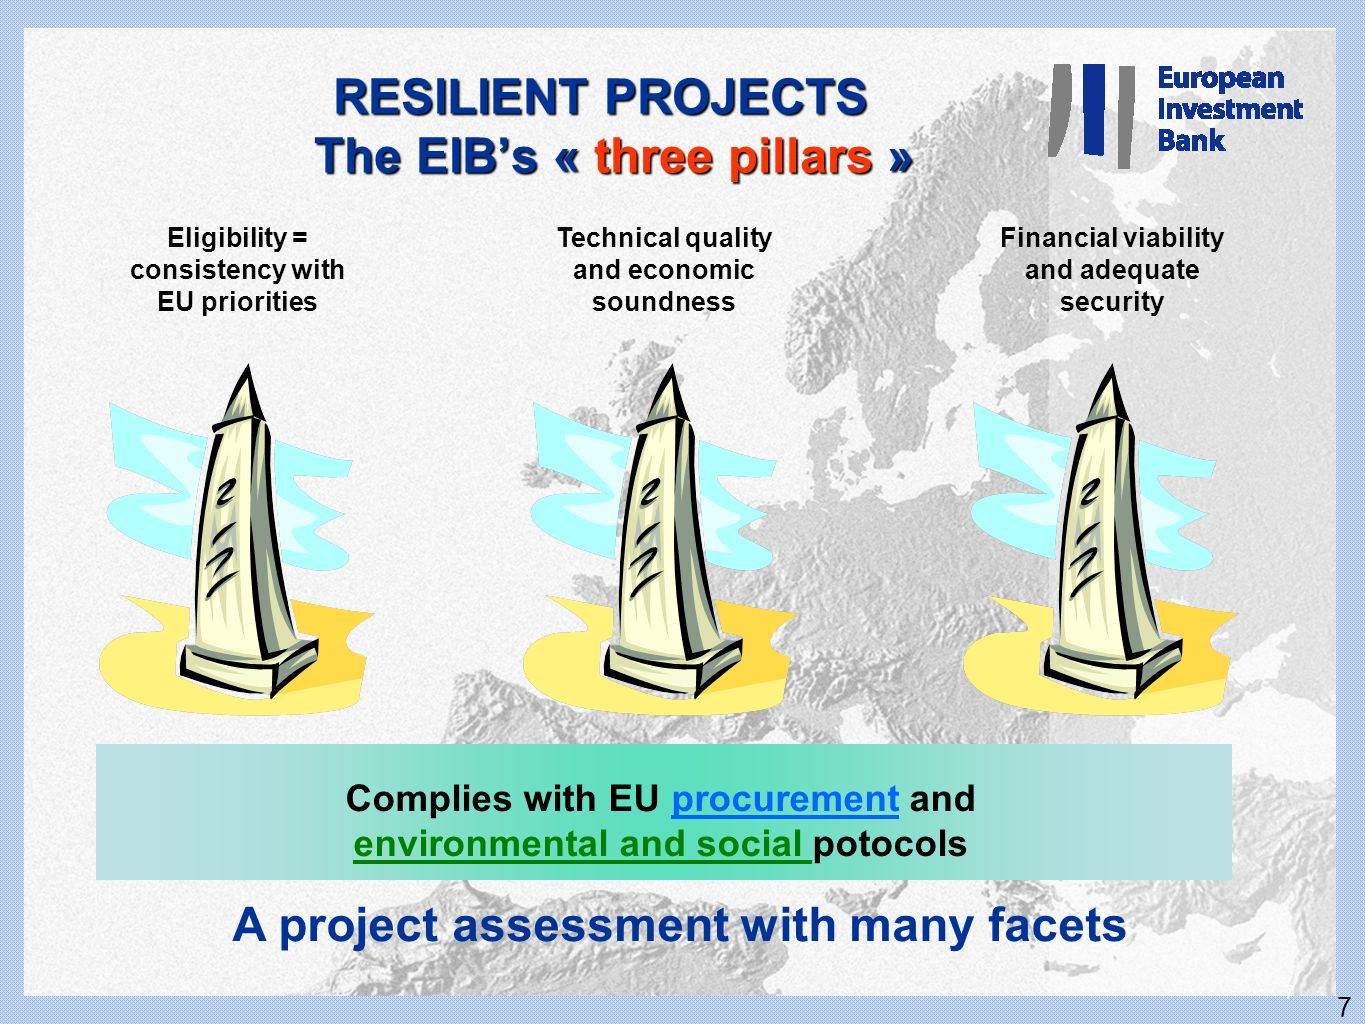 7 7 A project assessment with many facets RESILIENT PROJECTS The EIBs « three pillars » Eligibility = consistency with EU priorities Technical quality and economic soundness Financial viability and adequate security Complies with EU procurement and environmental and social potocols